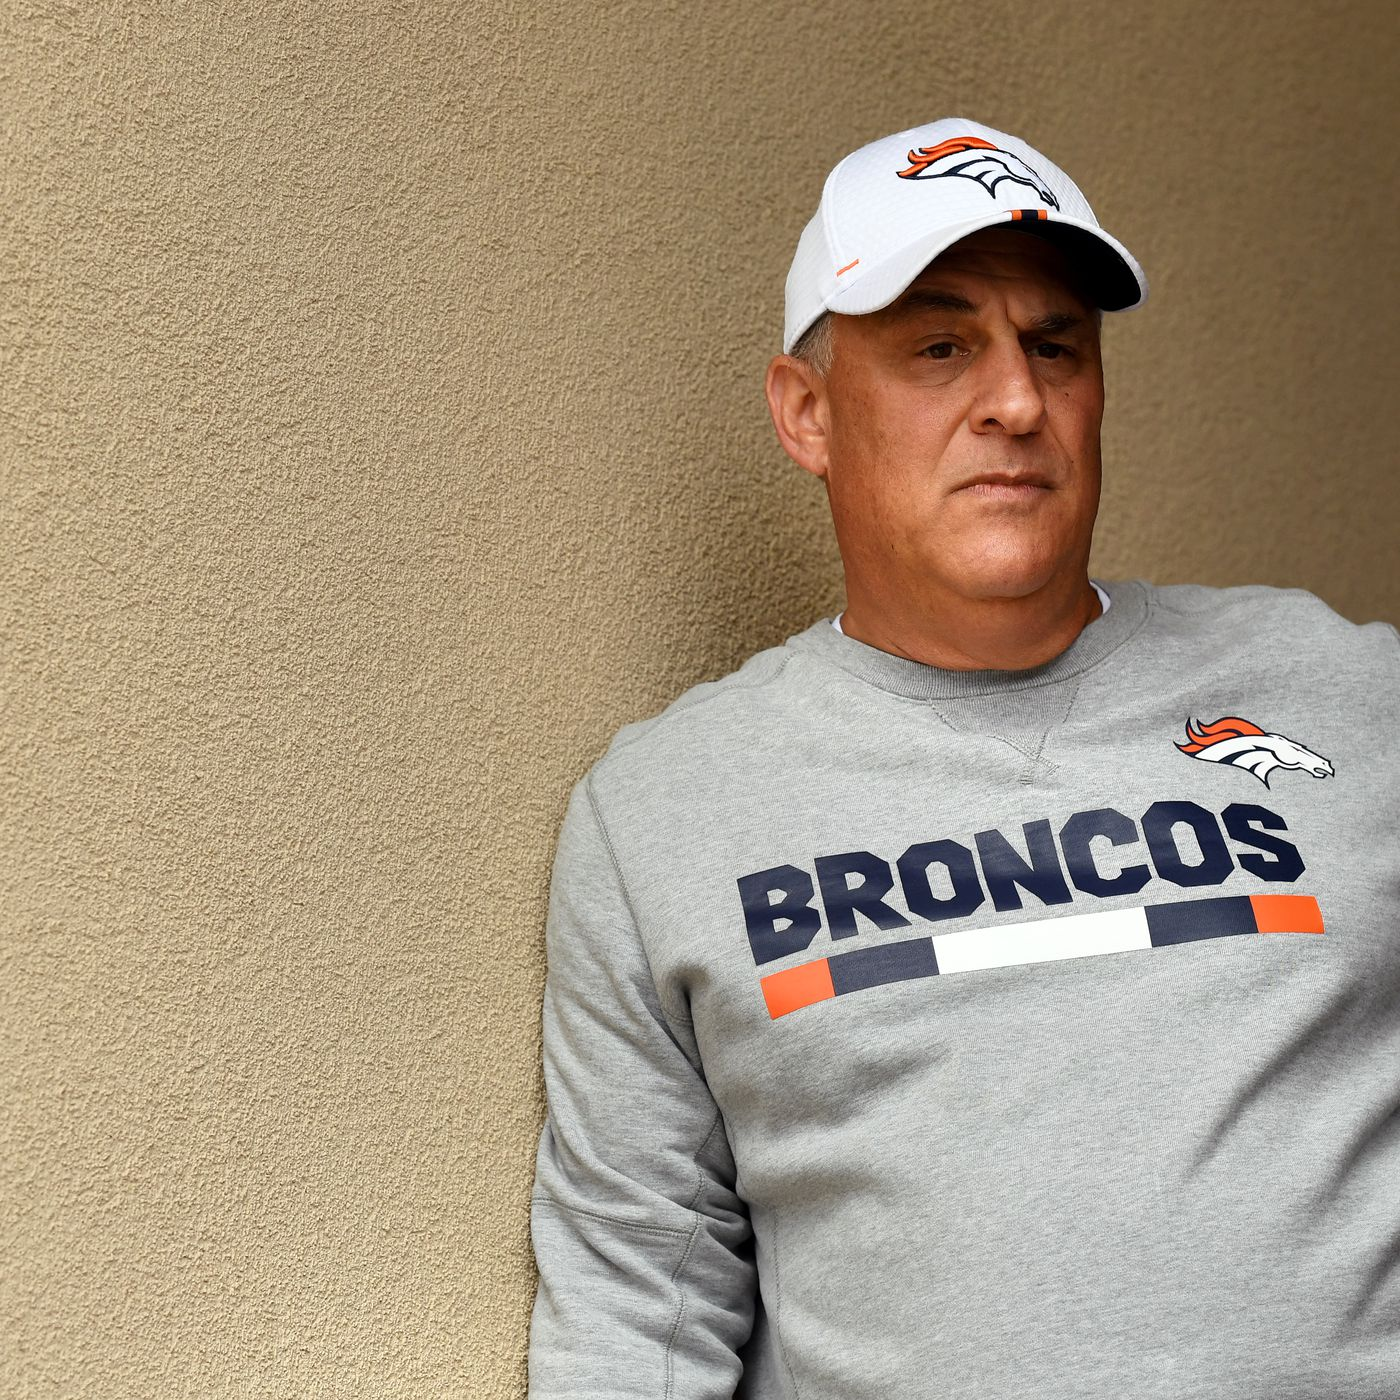 bdd7b661 July finds the Denver Broncos poised for success in 2019 - Mile High ...